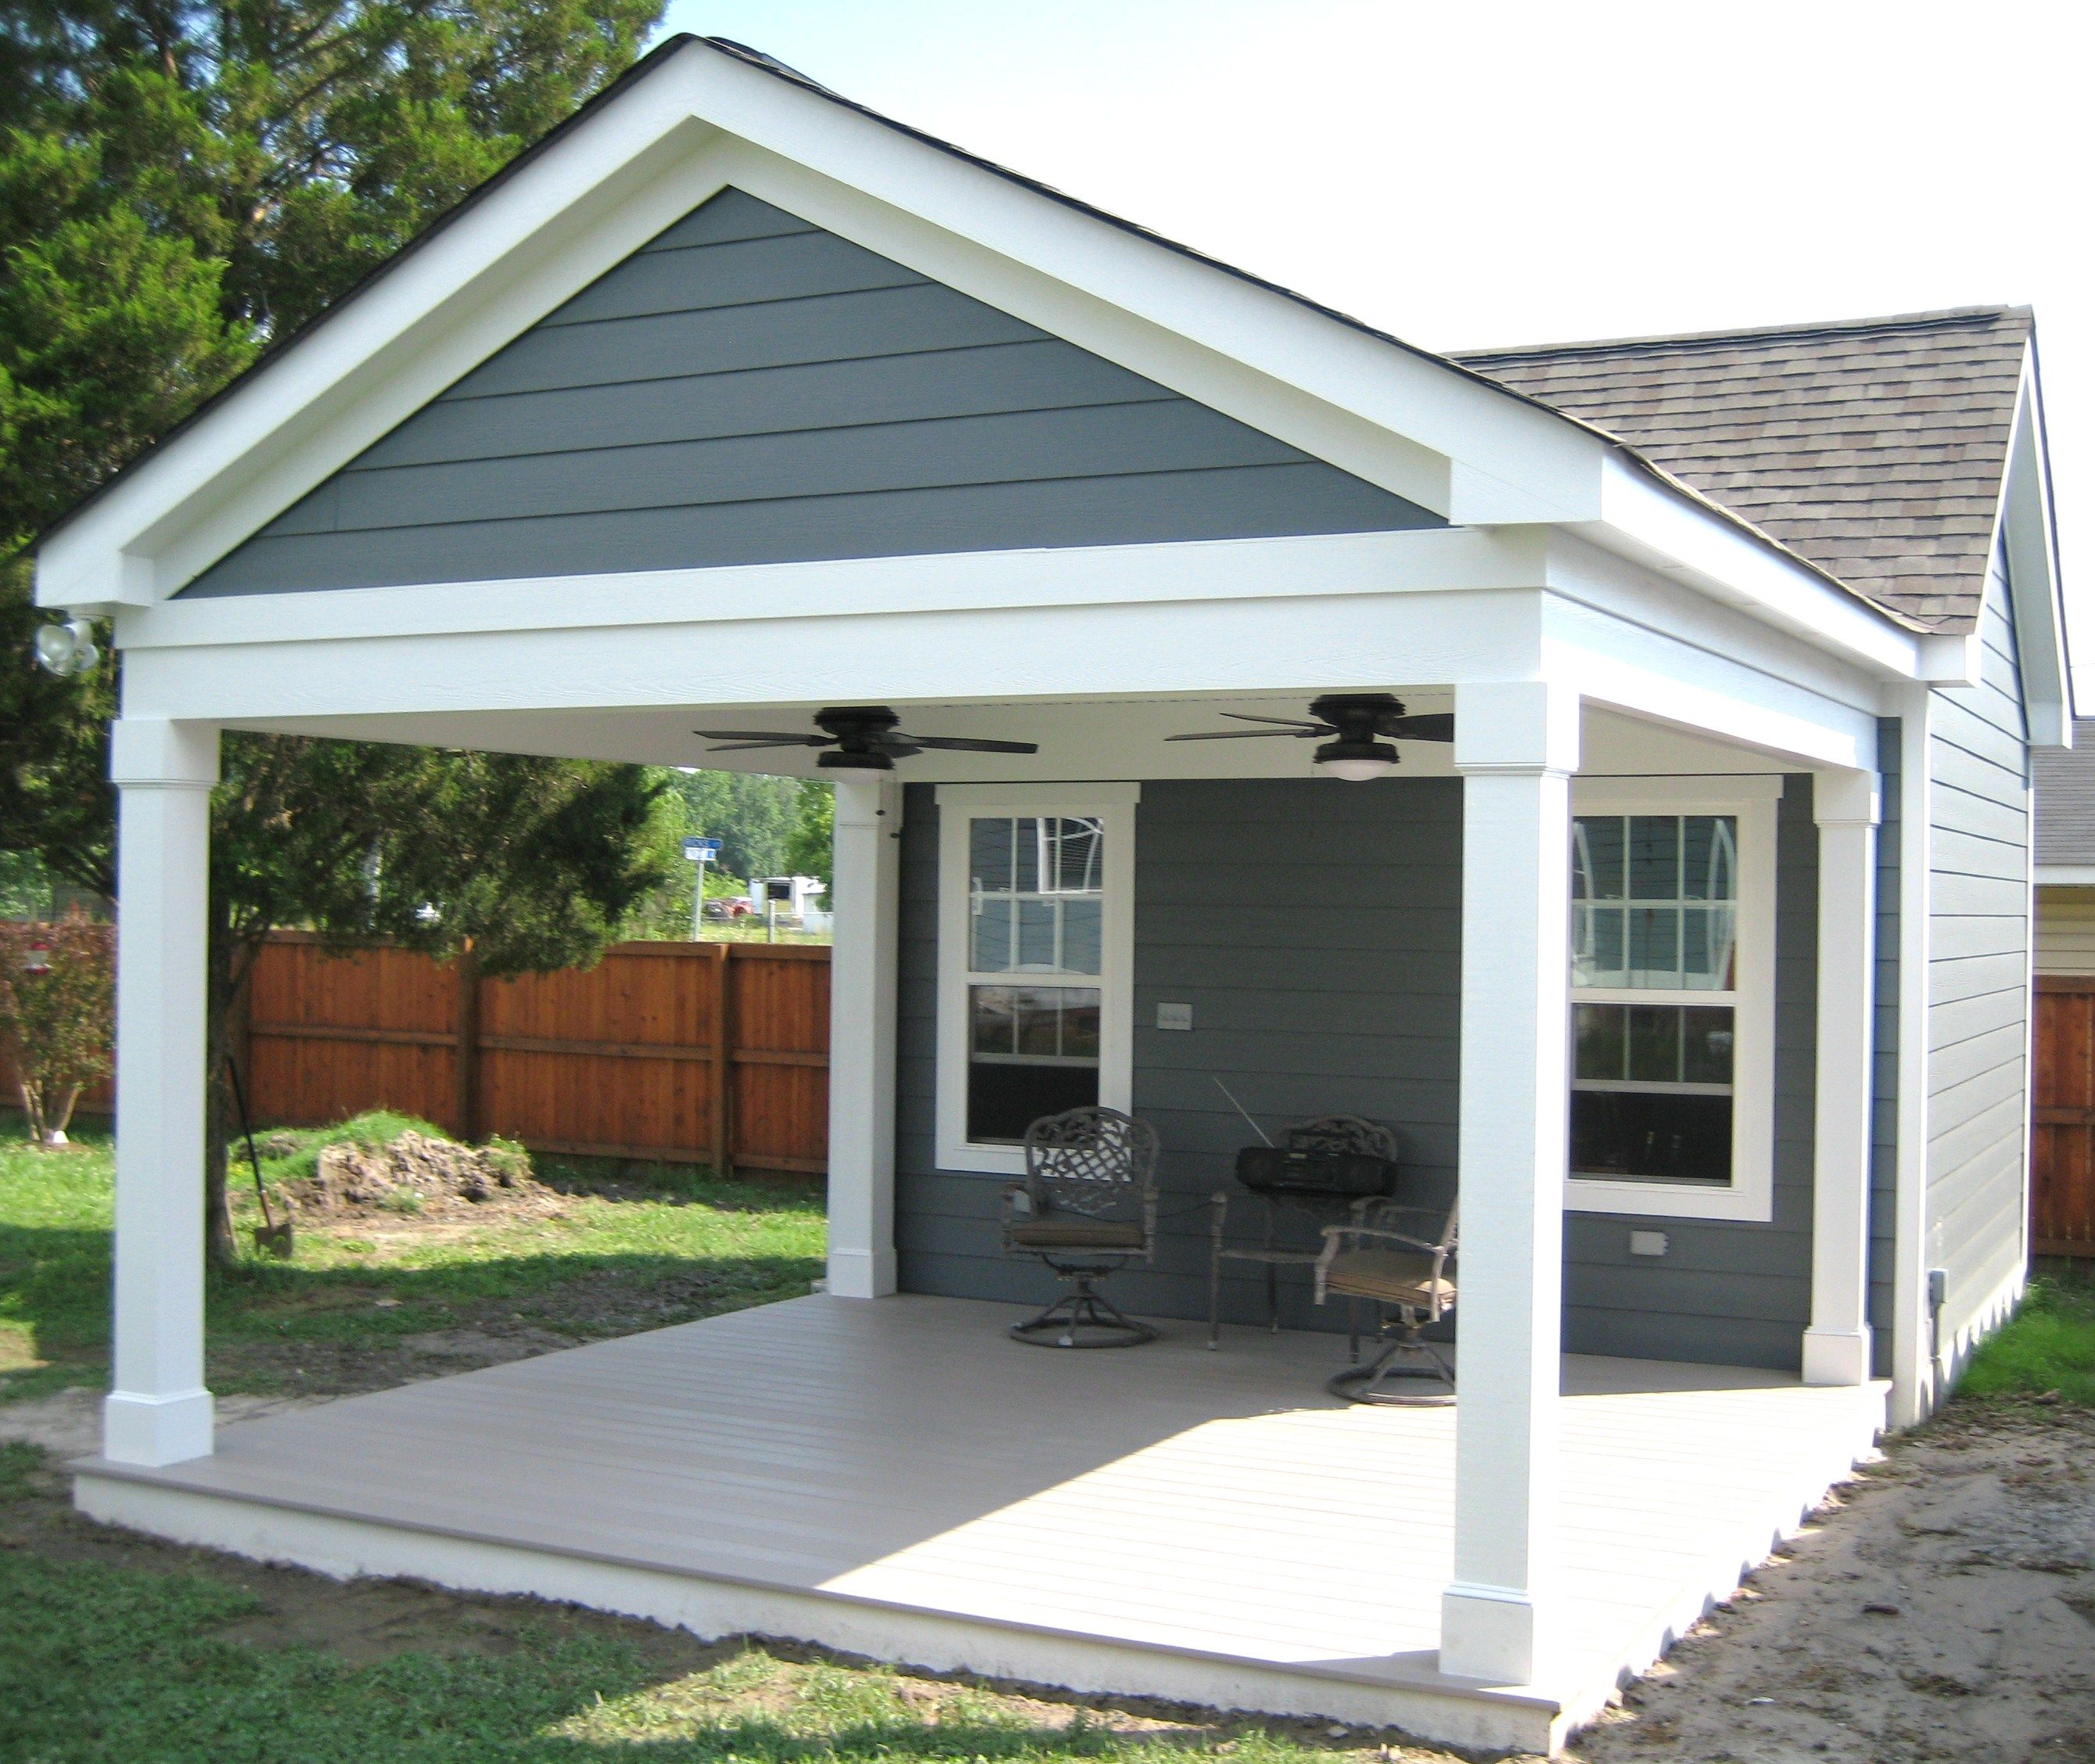 Garage with porch outbuilding with covered porch Covered porch house plans